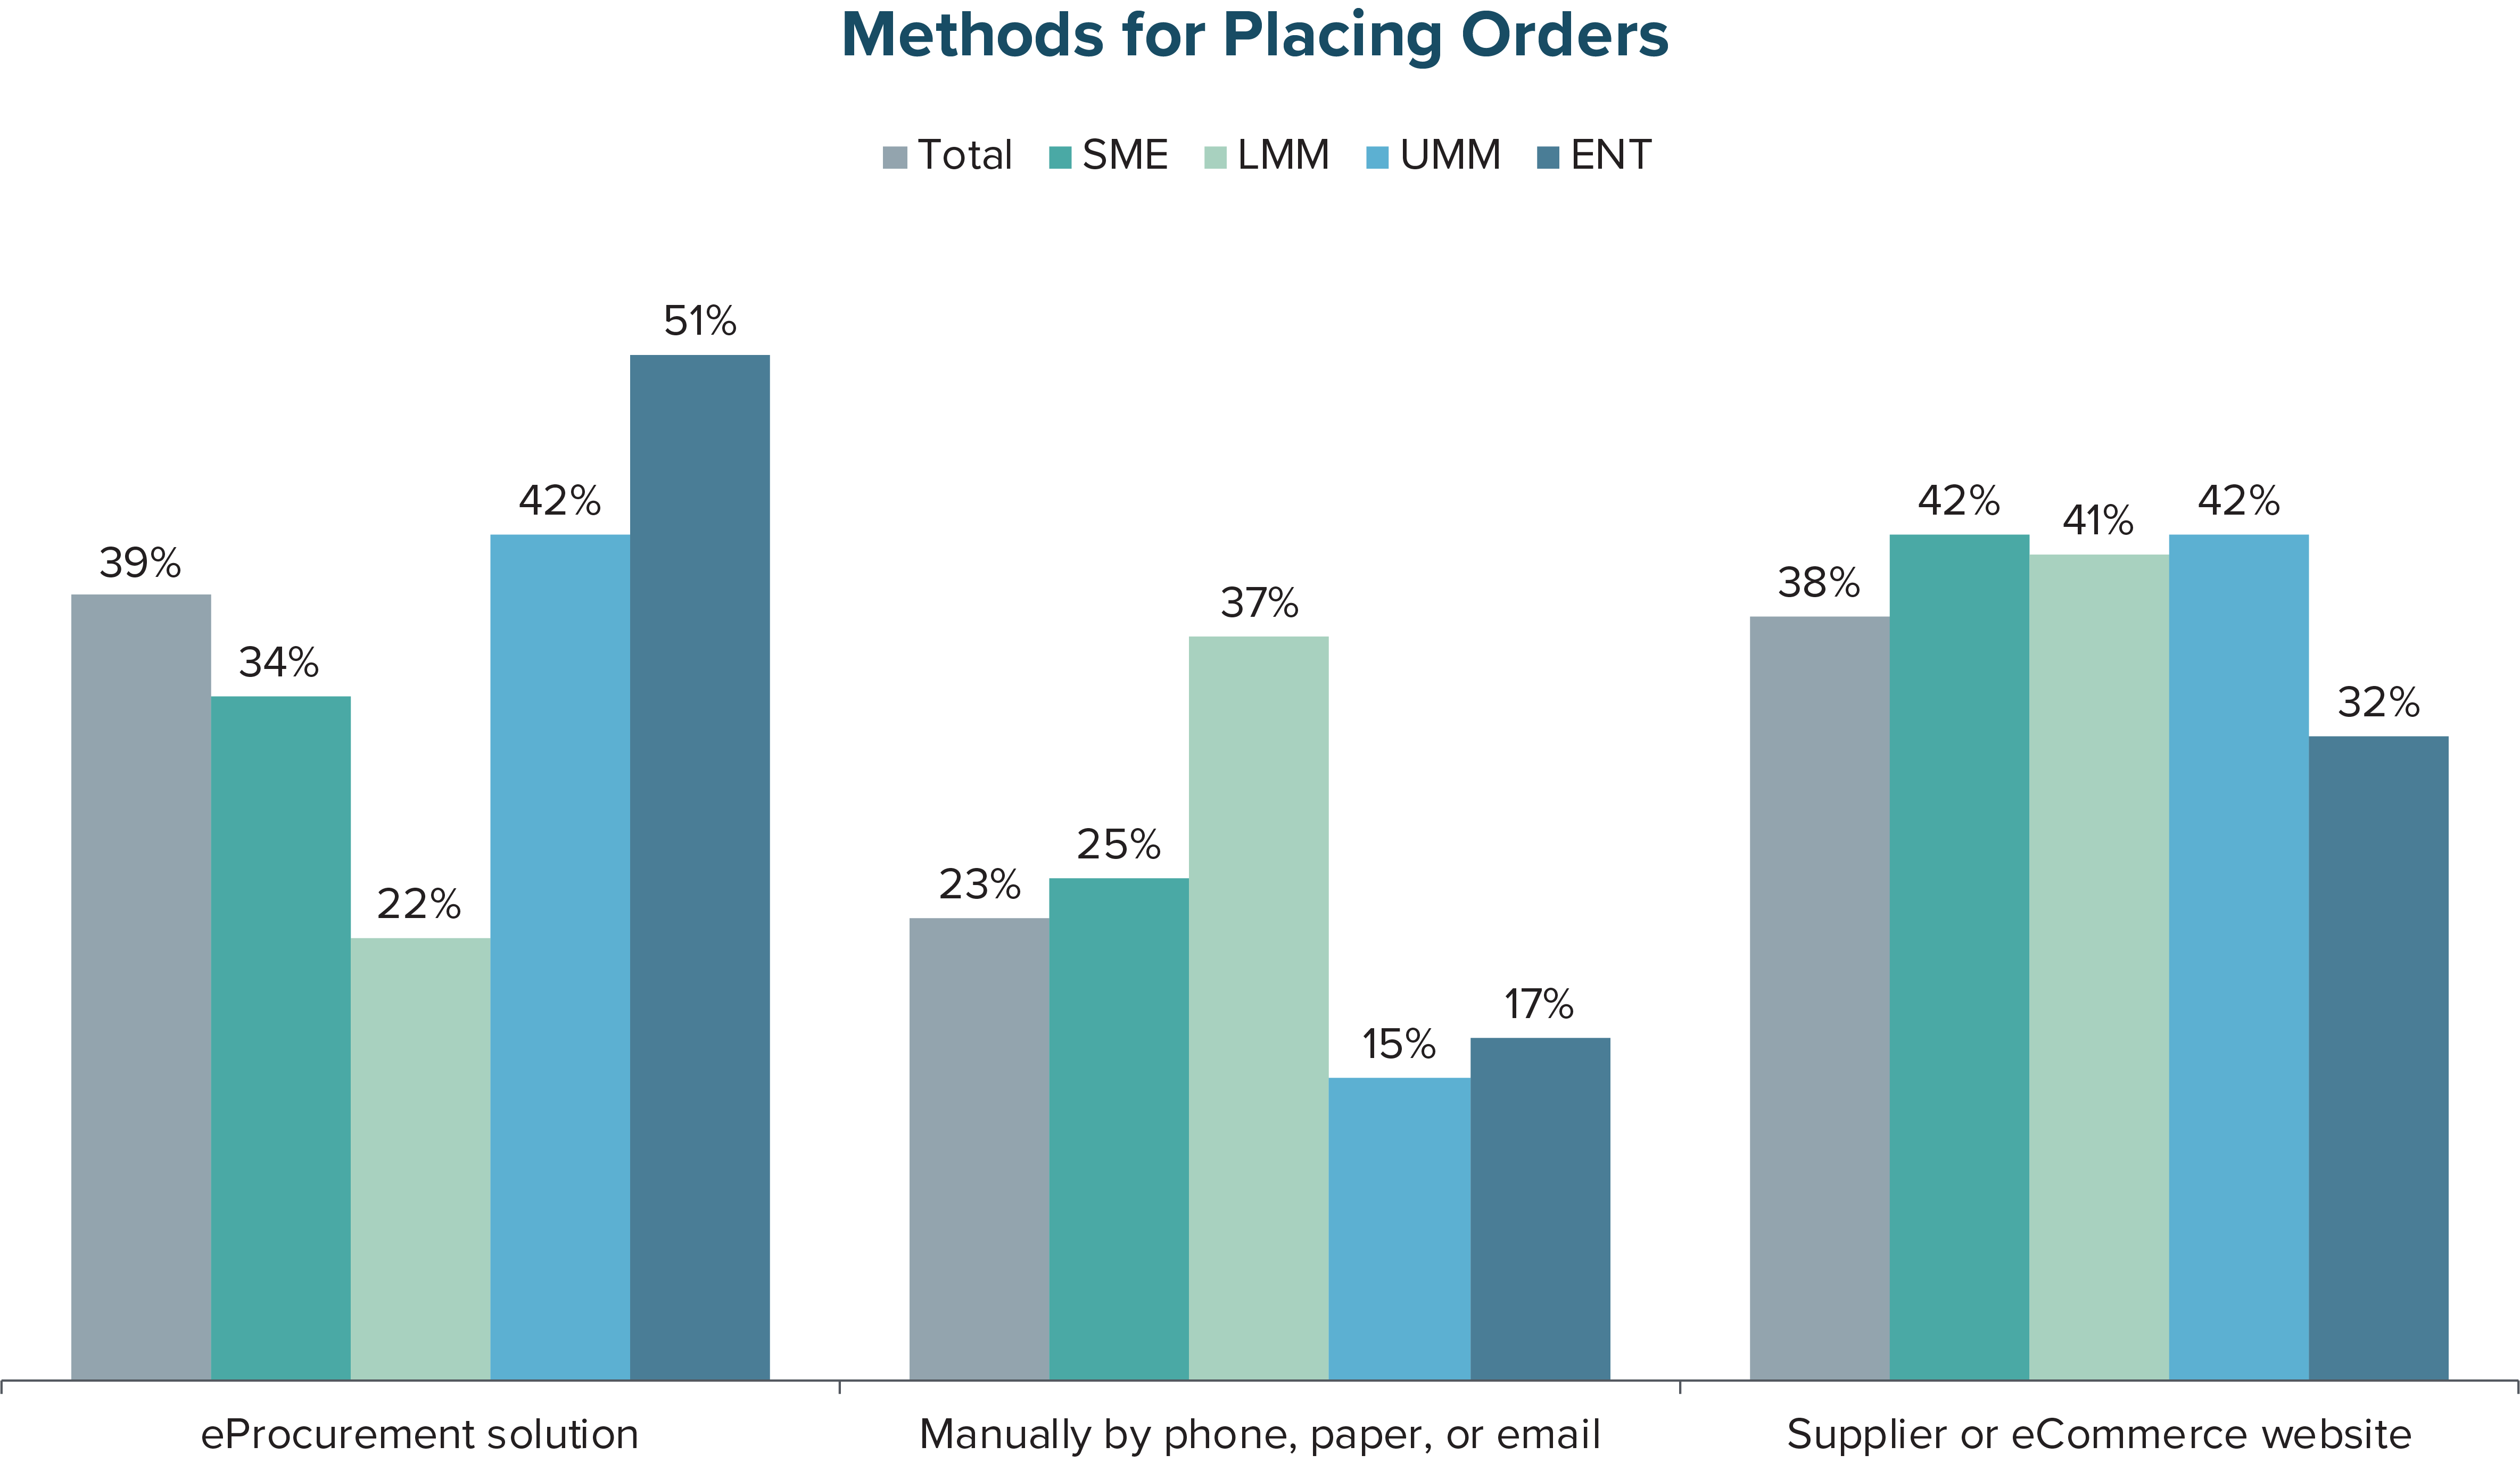 Methods for Placing Orders